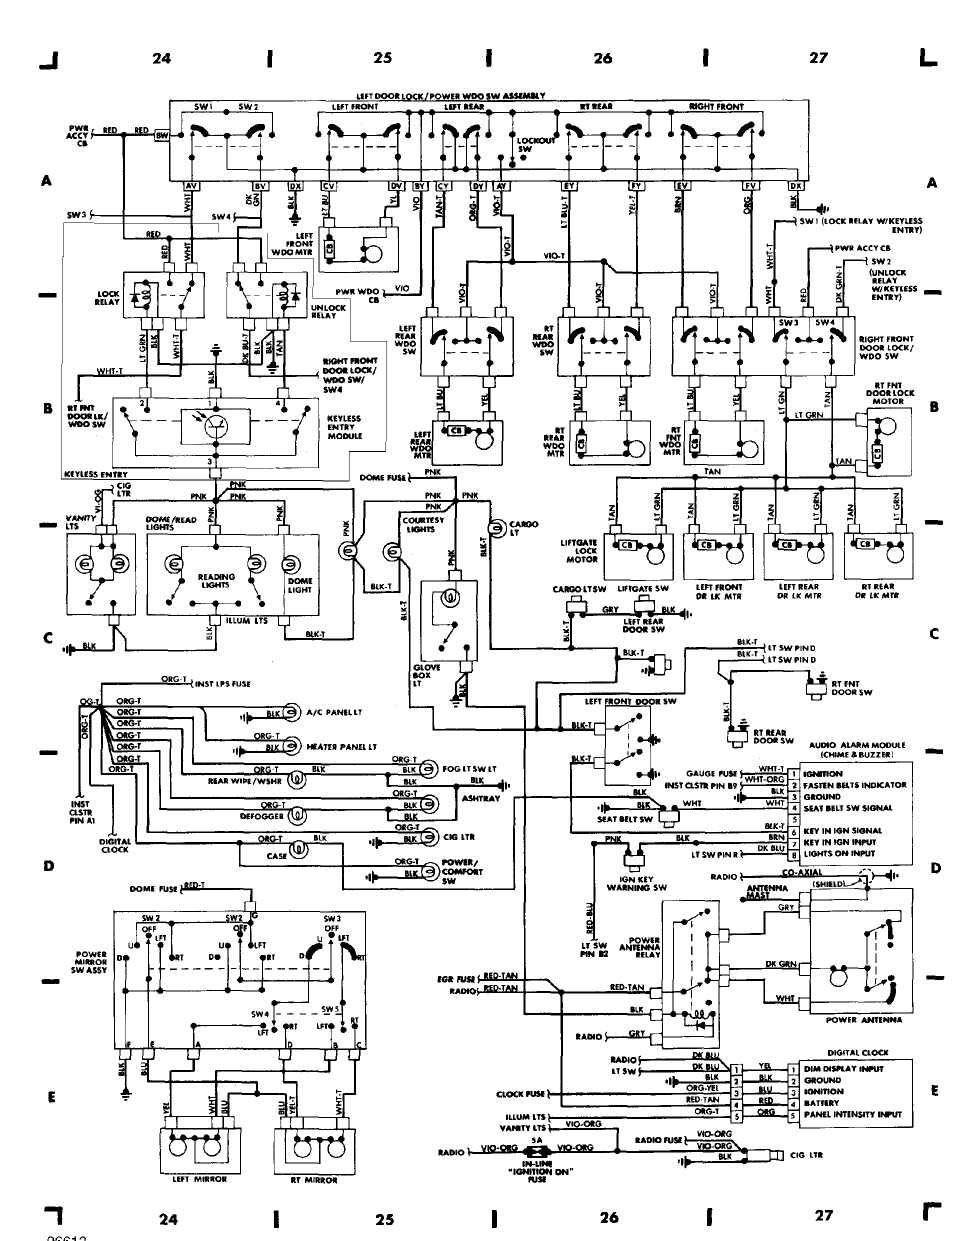 wiring_diagrams_html_61f5e0ad wiring diagrams 1984 1991 jeep cherokee (xj) jeep 1990 jeep cherokee fuse box diagram at soozxer.org